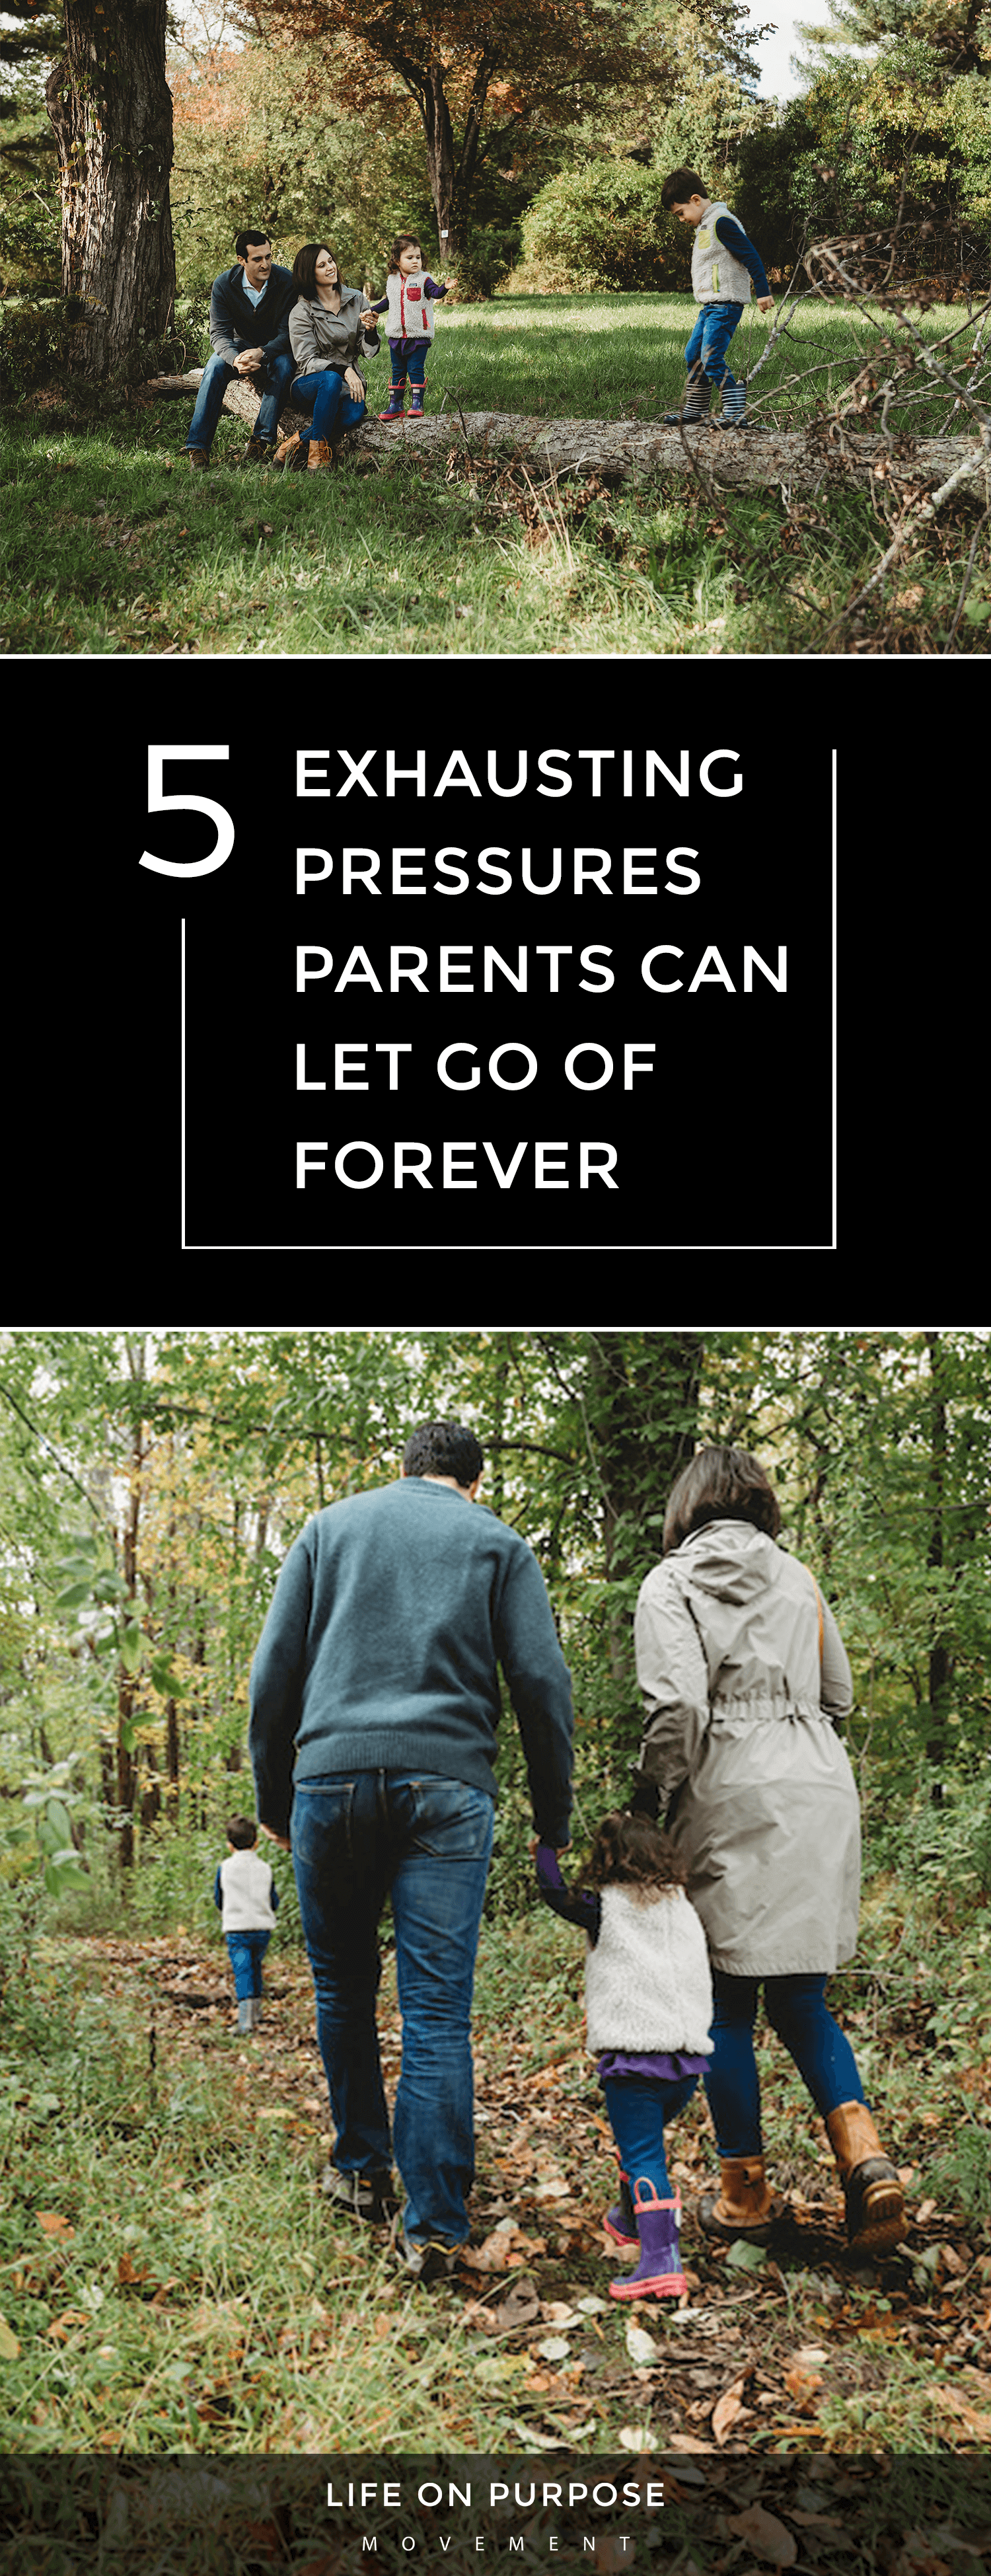 5 Exhausting Pressures Parents Can Let Go Of Forever